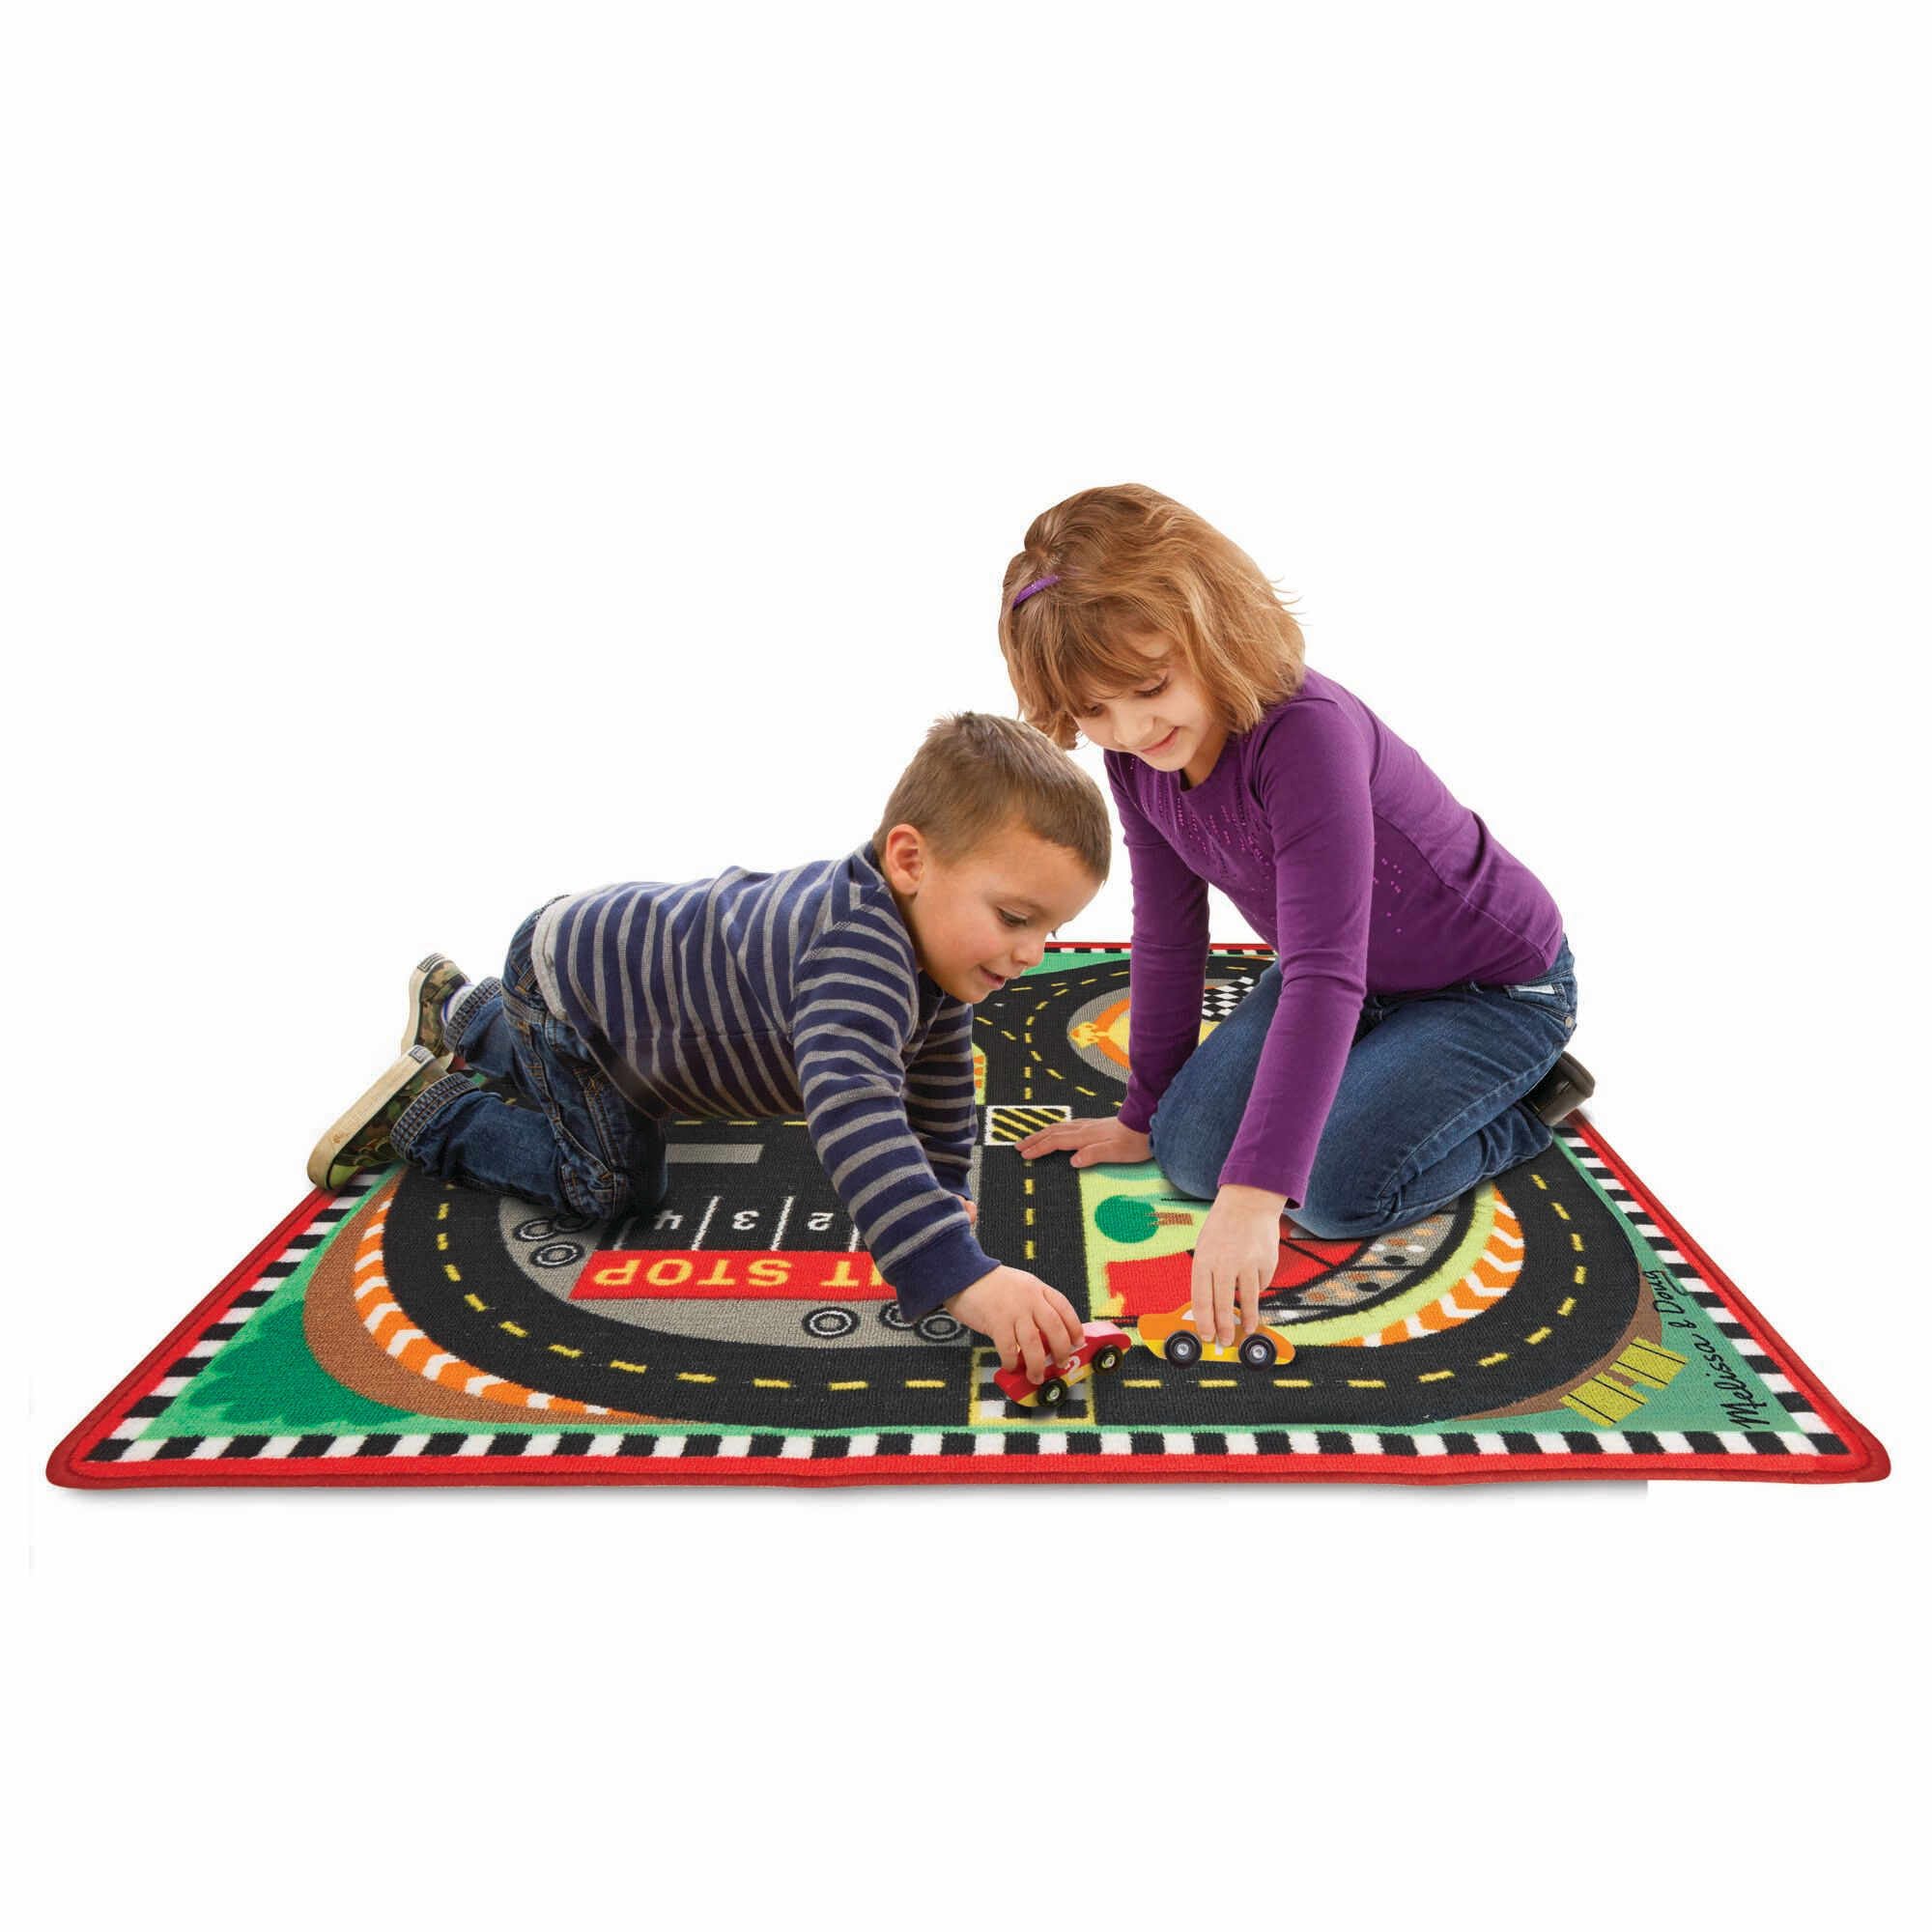 Lovely Round The Speedway Race Track Rug U0026 Car Set